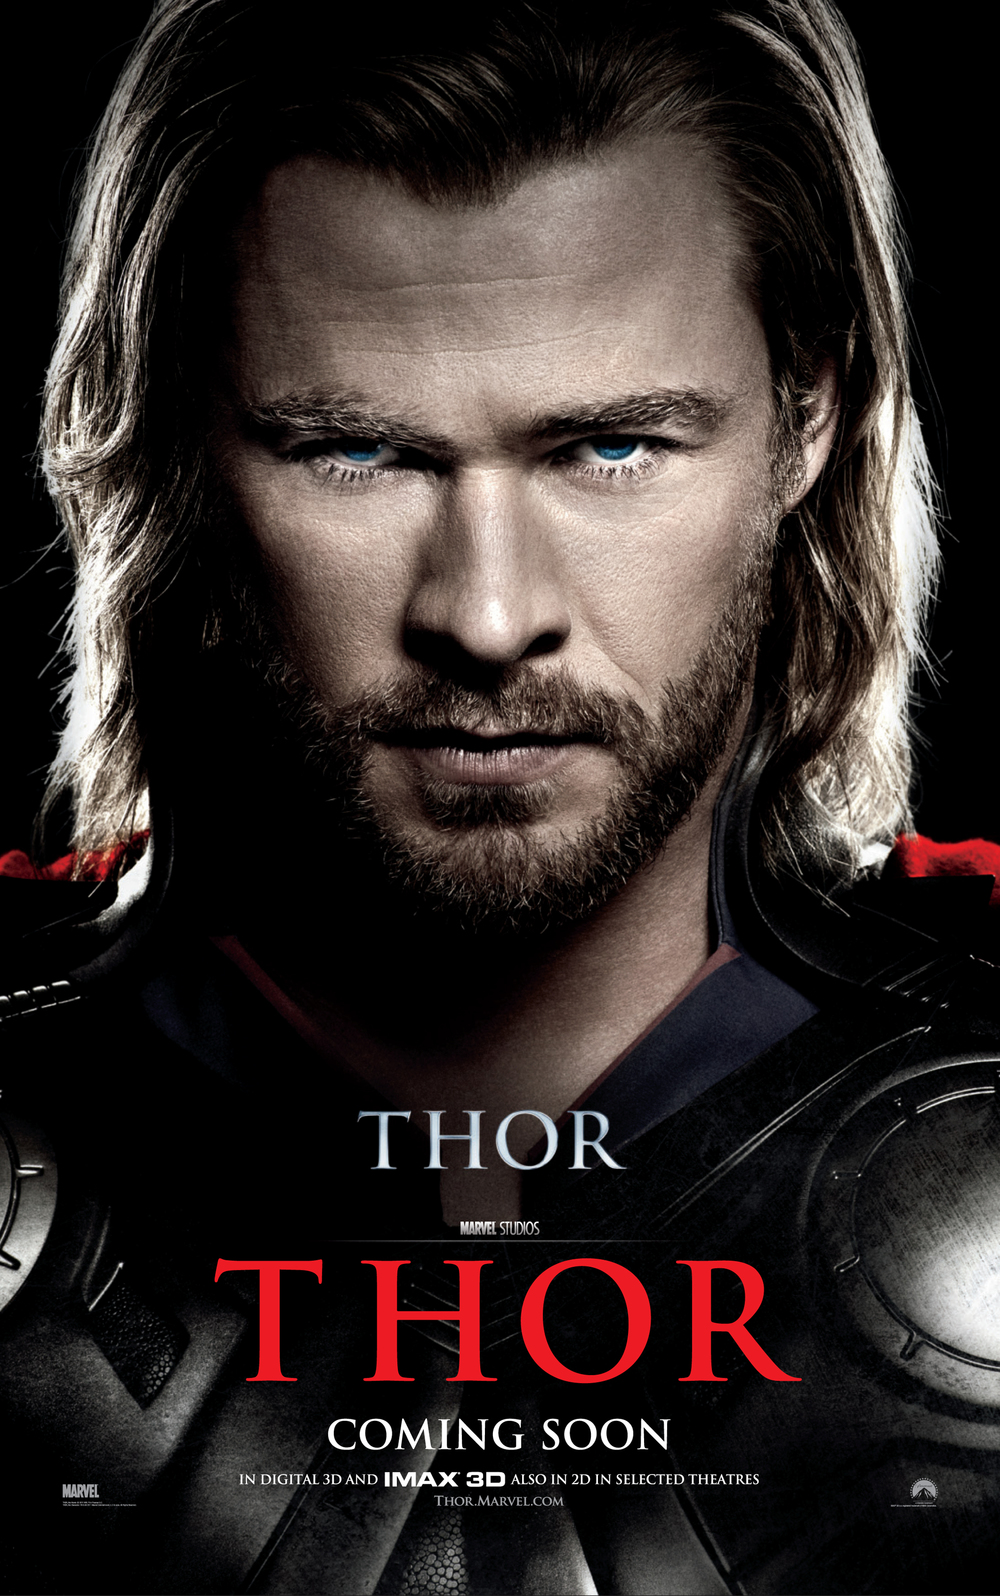 The Thor franchise is a steady mainstay for Marvel, but the character has been pushed off into secondary status next to Iron Man and Cap. While in total, the first two Thor movies have grossed just slightly more than Captain America, $1.093 million to $1.085 million, his growth in popularity hasn't been as drastic. And, in being absent for Civil War and having a 4-year gap between his second and third movie, it is obvious Marvel realizes Thor isn't their biggest star.